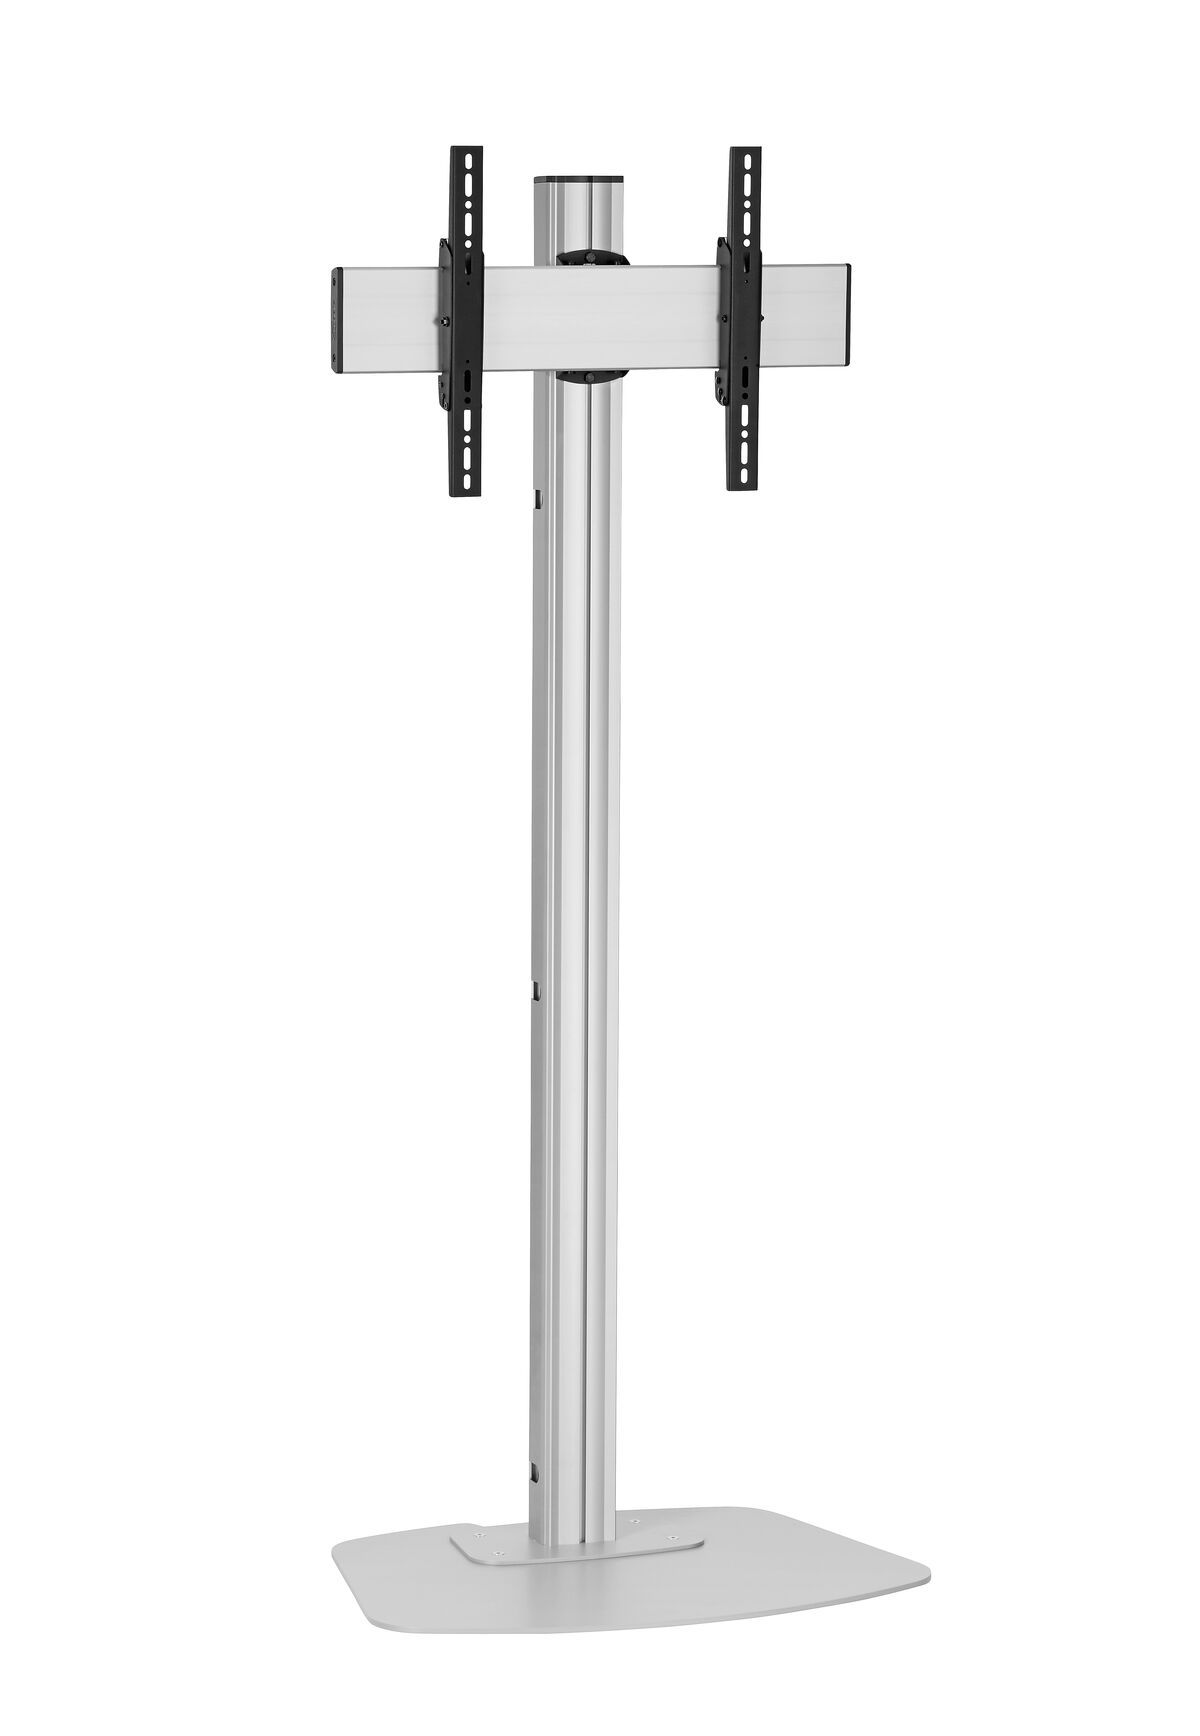 Vogel's F1844S Floor stand - Product